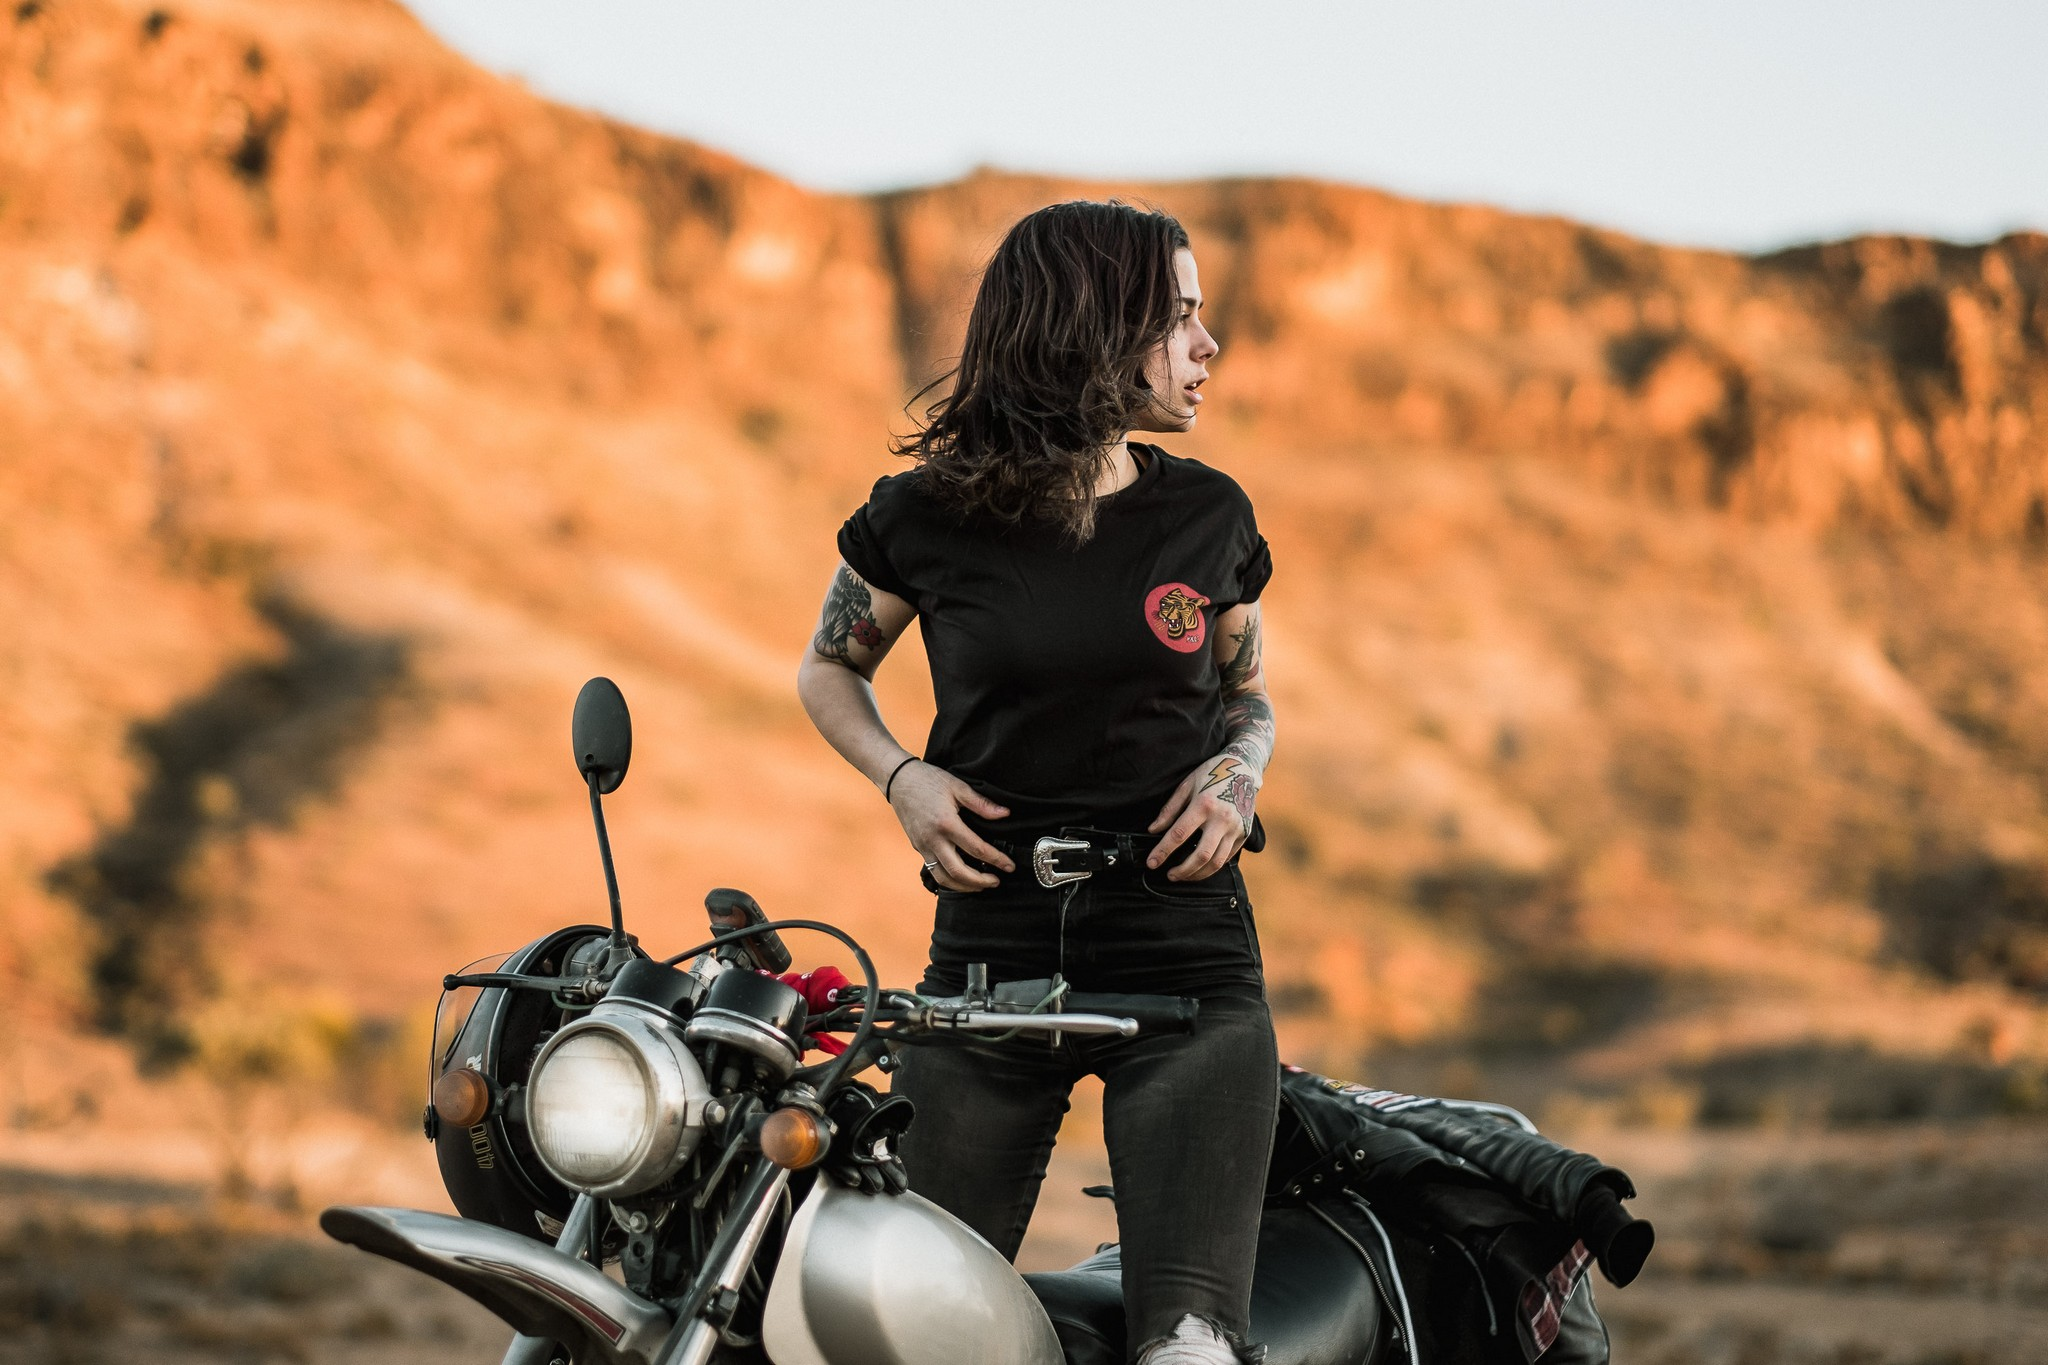 Woman on a motorcycle at dusk in a Tasmanian field